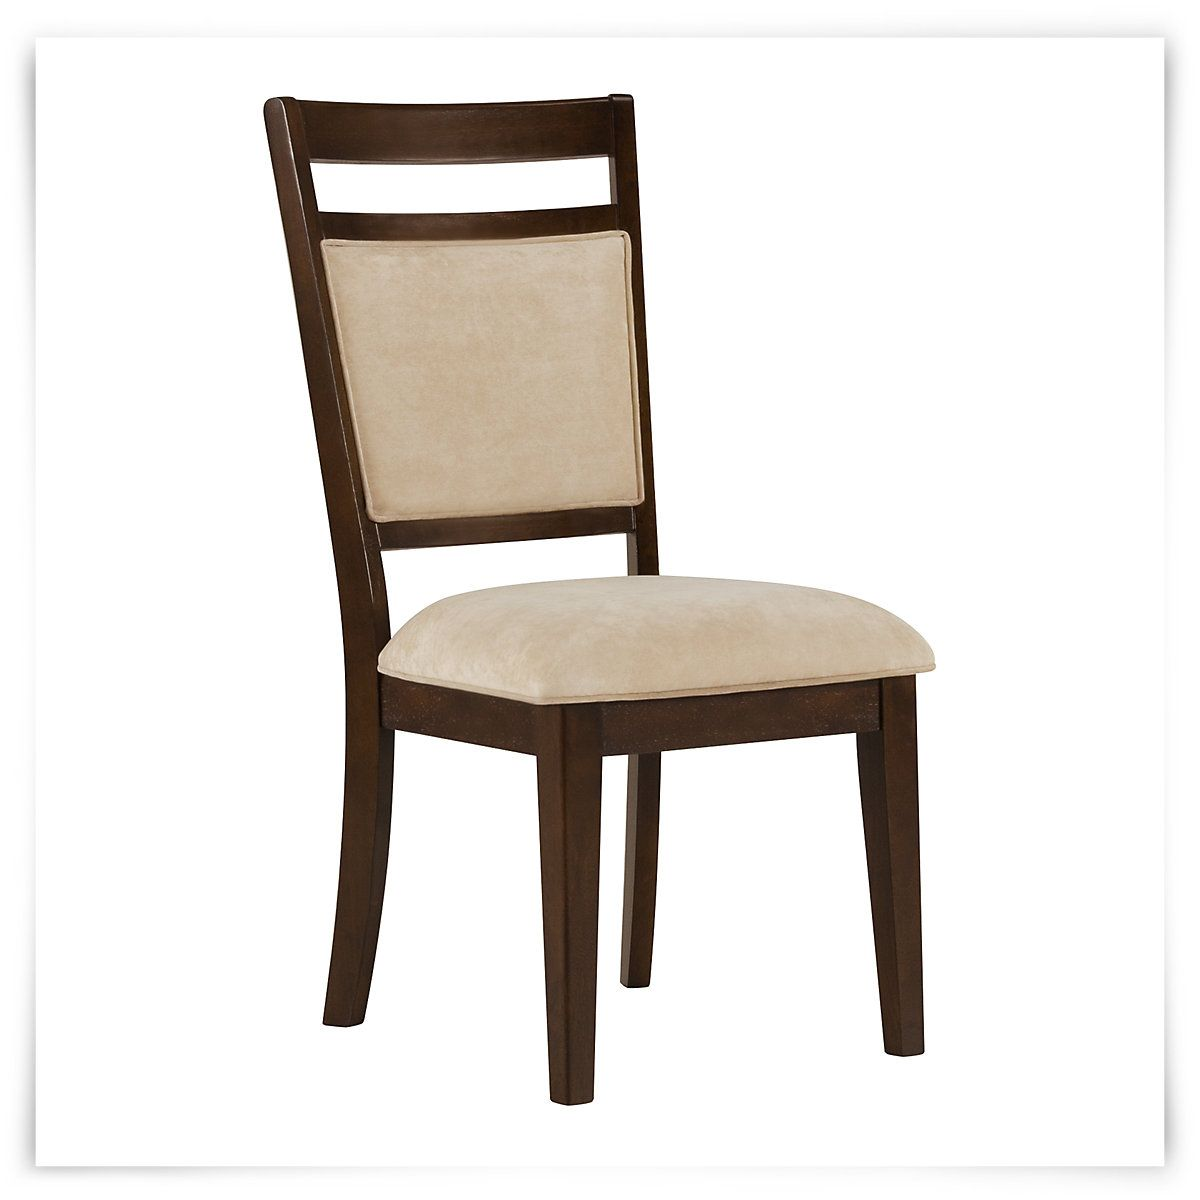 City Furniture Andora Mid Tone Upholstered Side Chair  Dining Best City Furniture Dining Room Design Inspiration